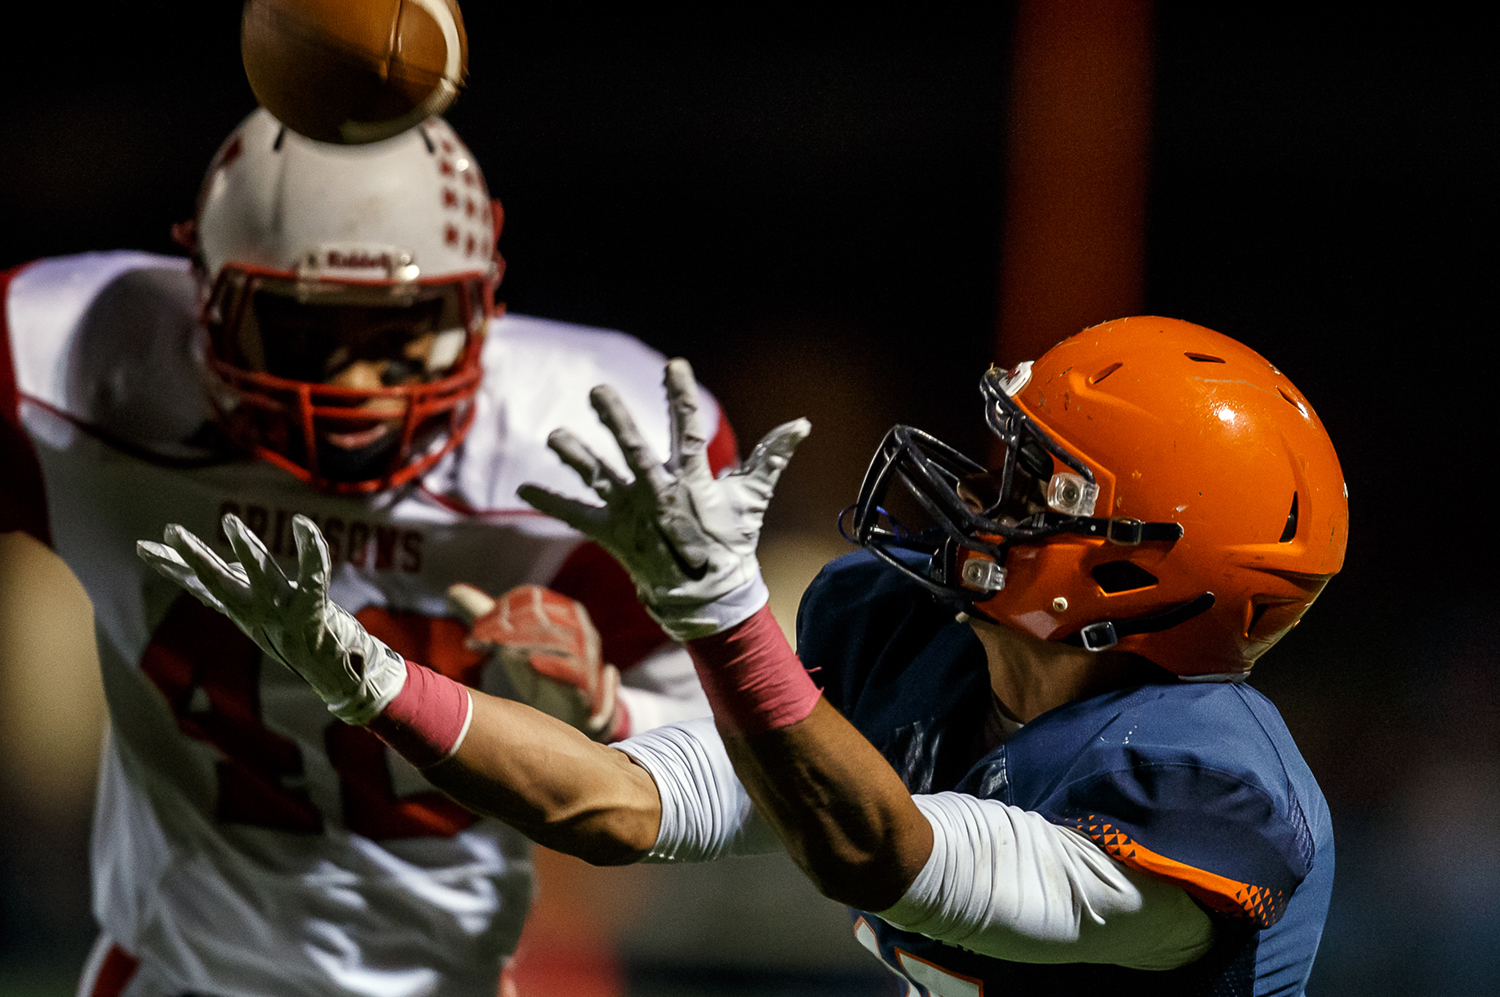 Rochester's Jeremy Bivens (15) lays out for a catch against Jacksonville's Juan Jackson (42) during the first half at Rocket Booster Field, Friday, Oct. 10, 2014, in Rochester, Ill. Justin L. Fowler/The State Journal-Register